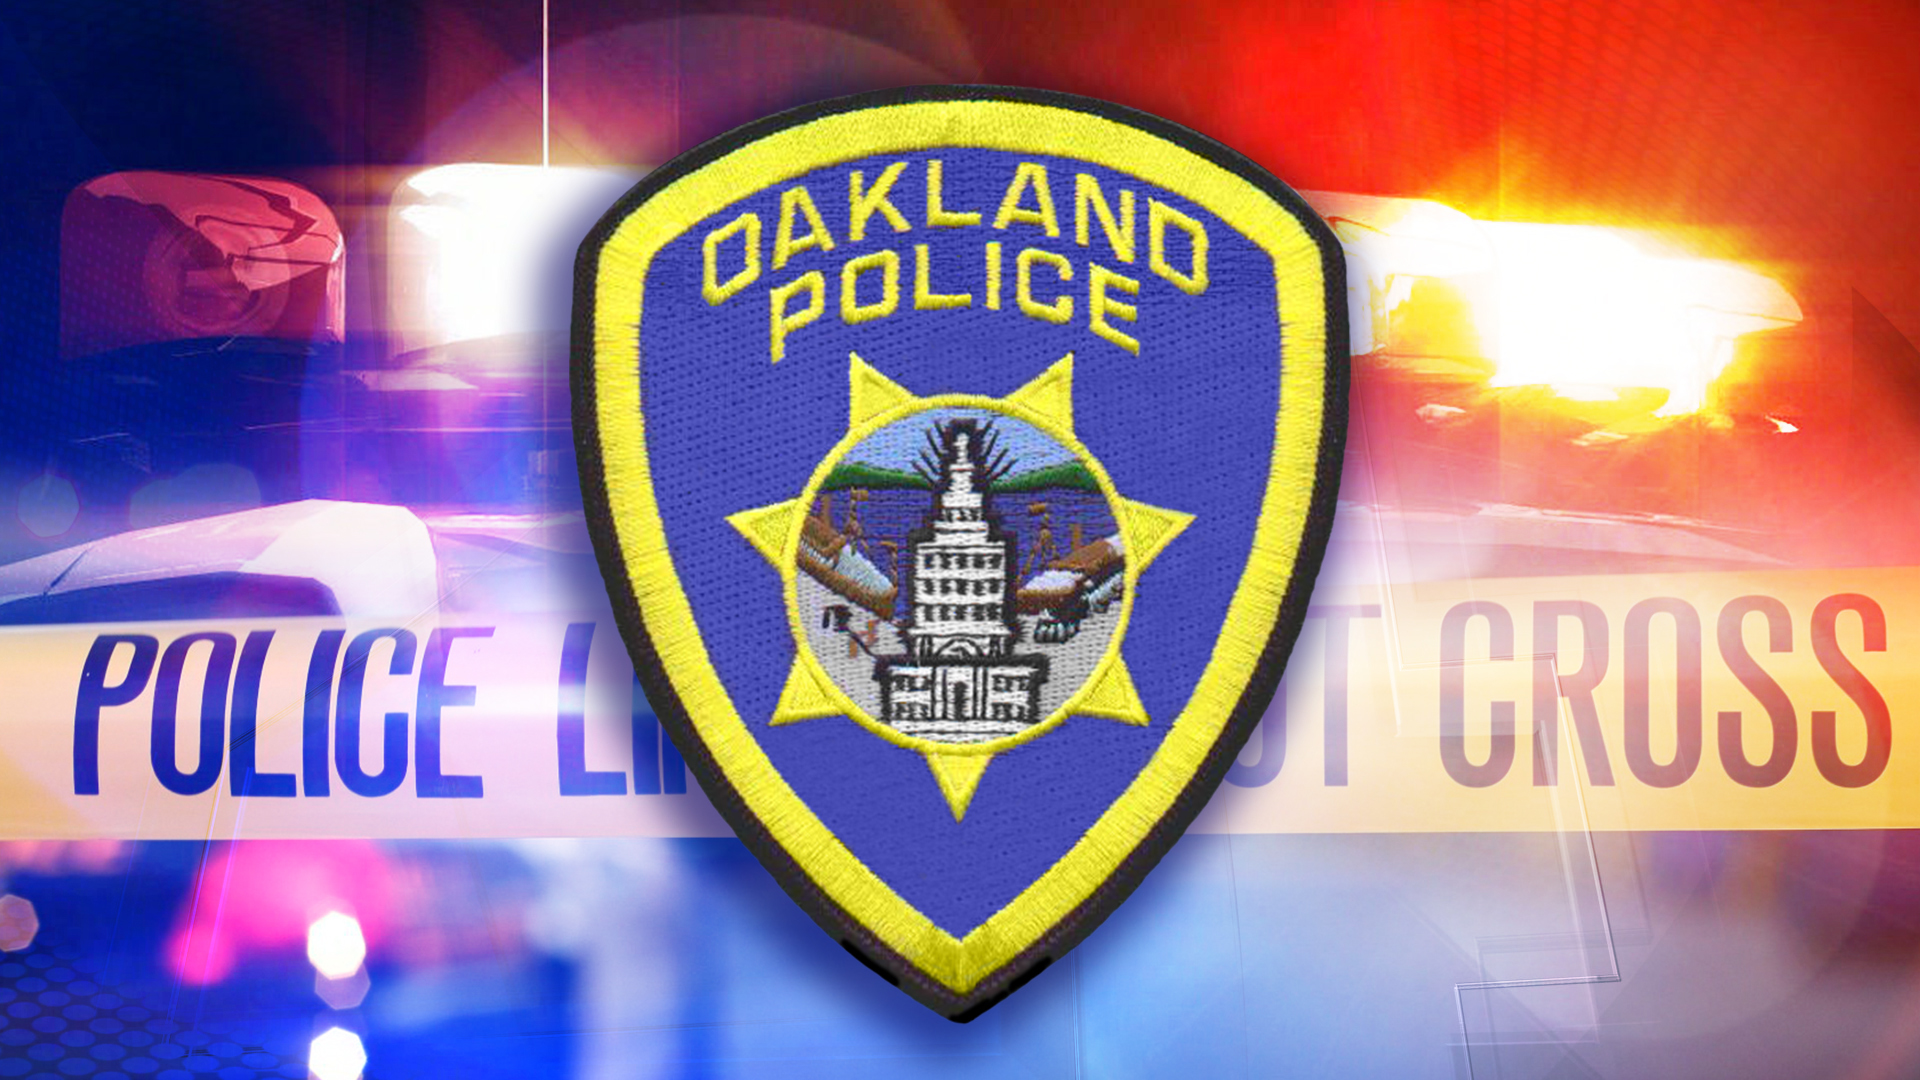 Oakland police exceed overtime budget by $13.7M per year, new report says